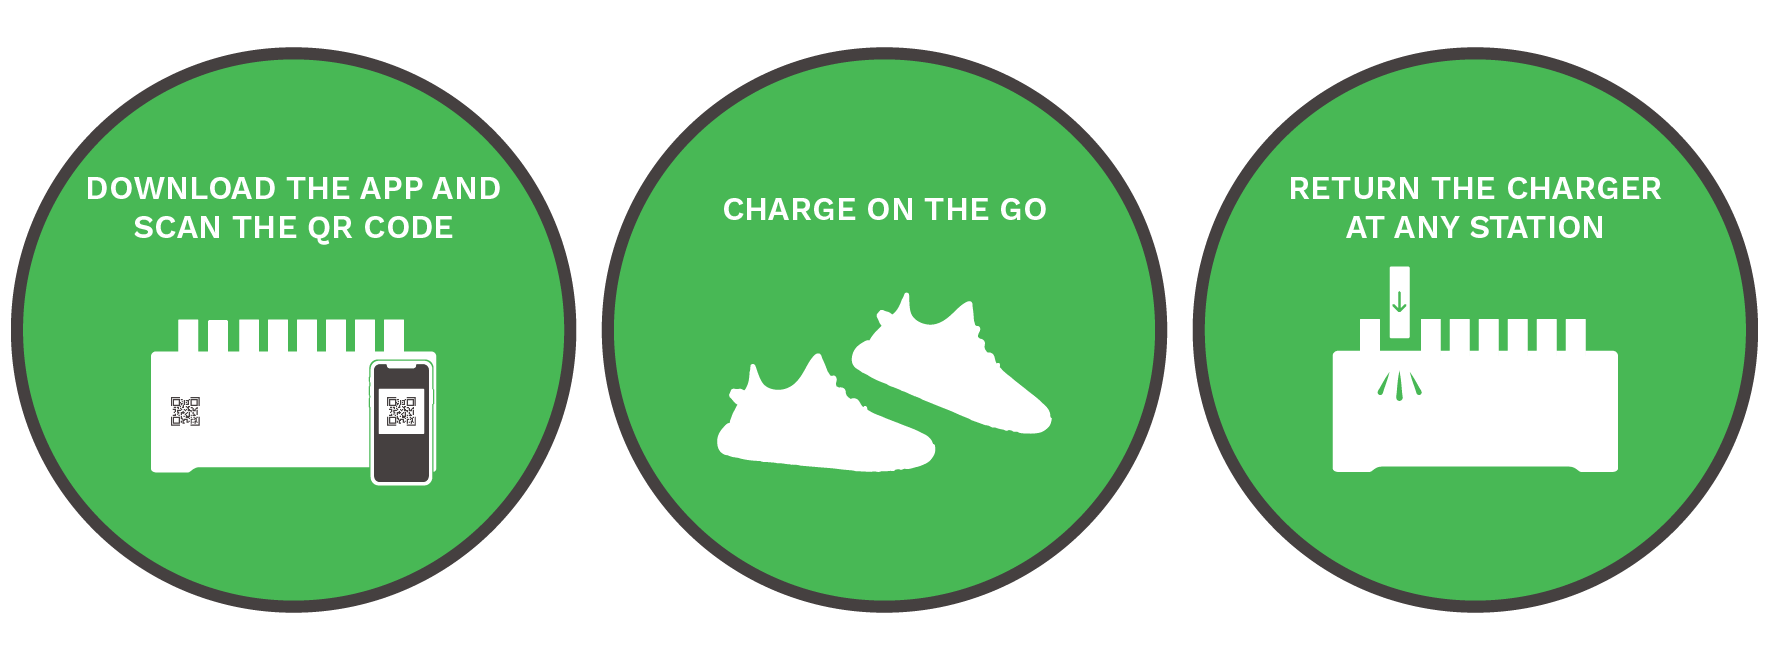 Banner version - How to Use ChargeBolt, phone charge, rent phone charger, london, bolted.png